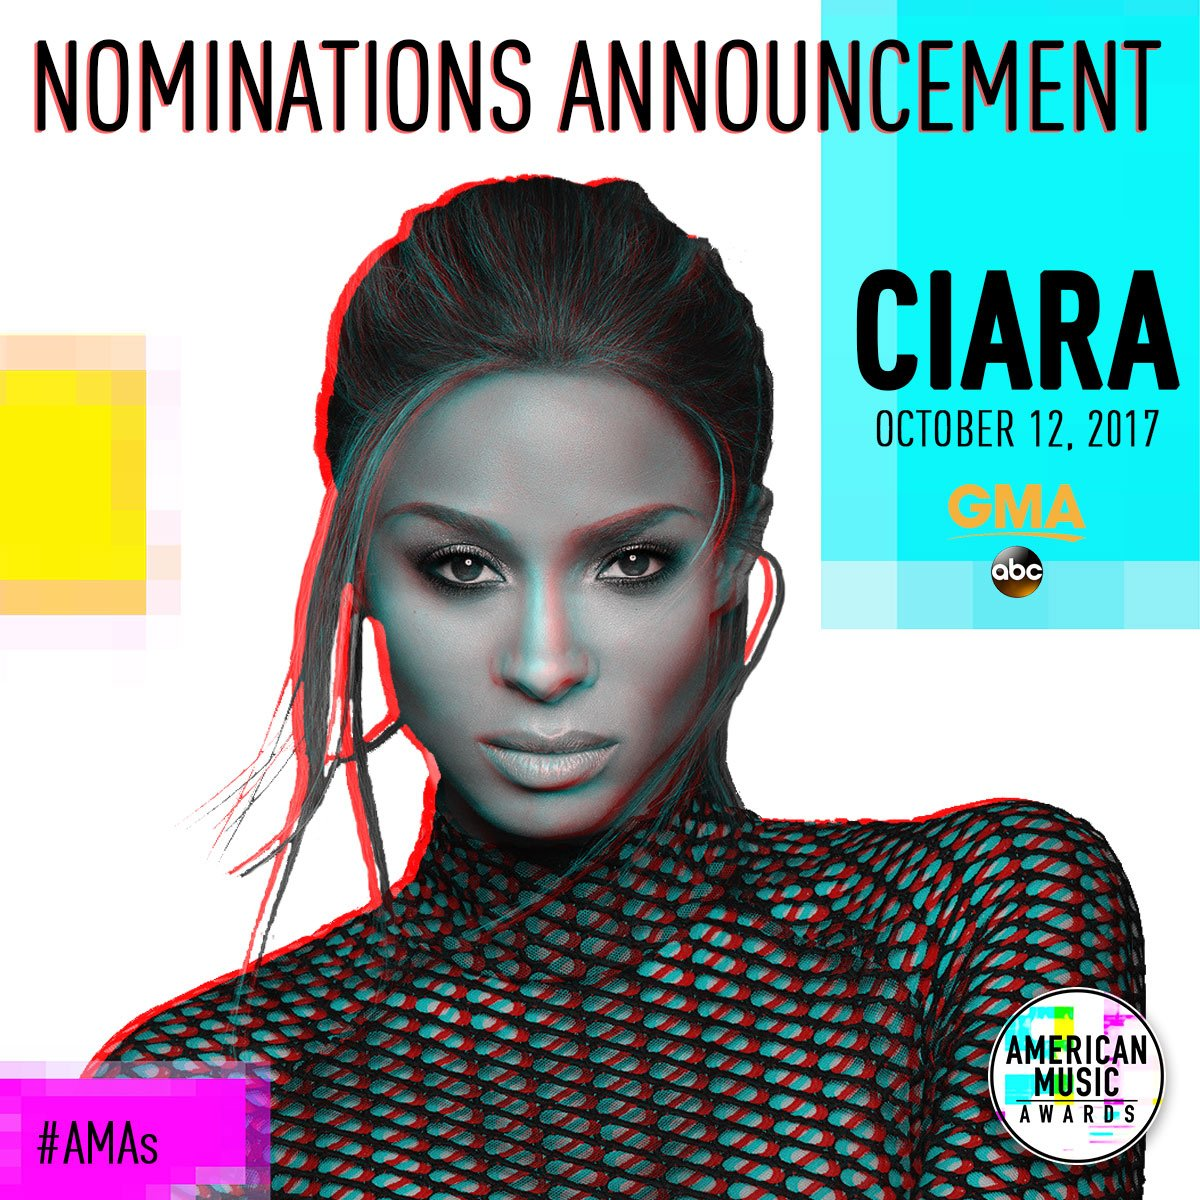 TOMORROW: @ciara brings us the @AMAs nominations LIVE in Times Square, only on @GMA! https://t.co/i5f8nVK3yF